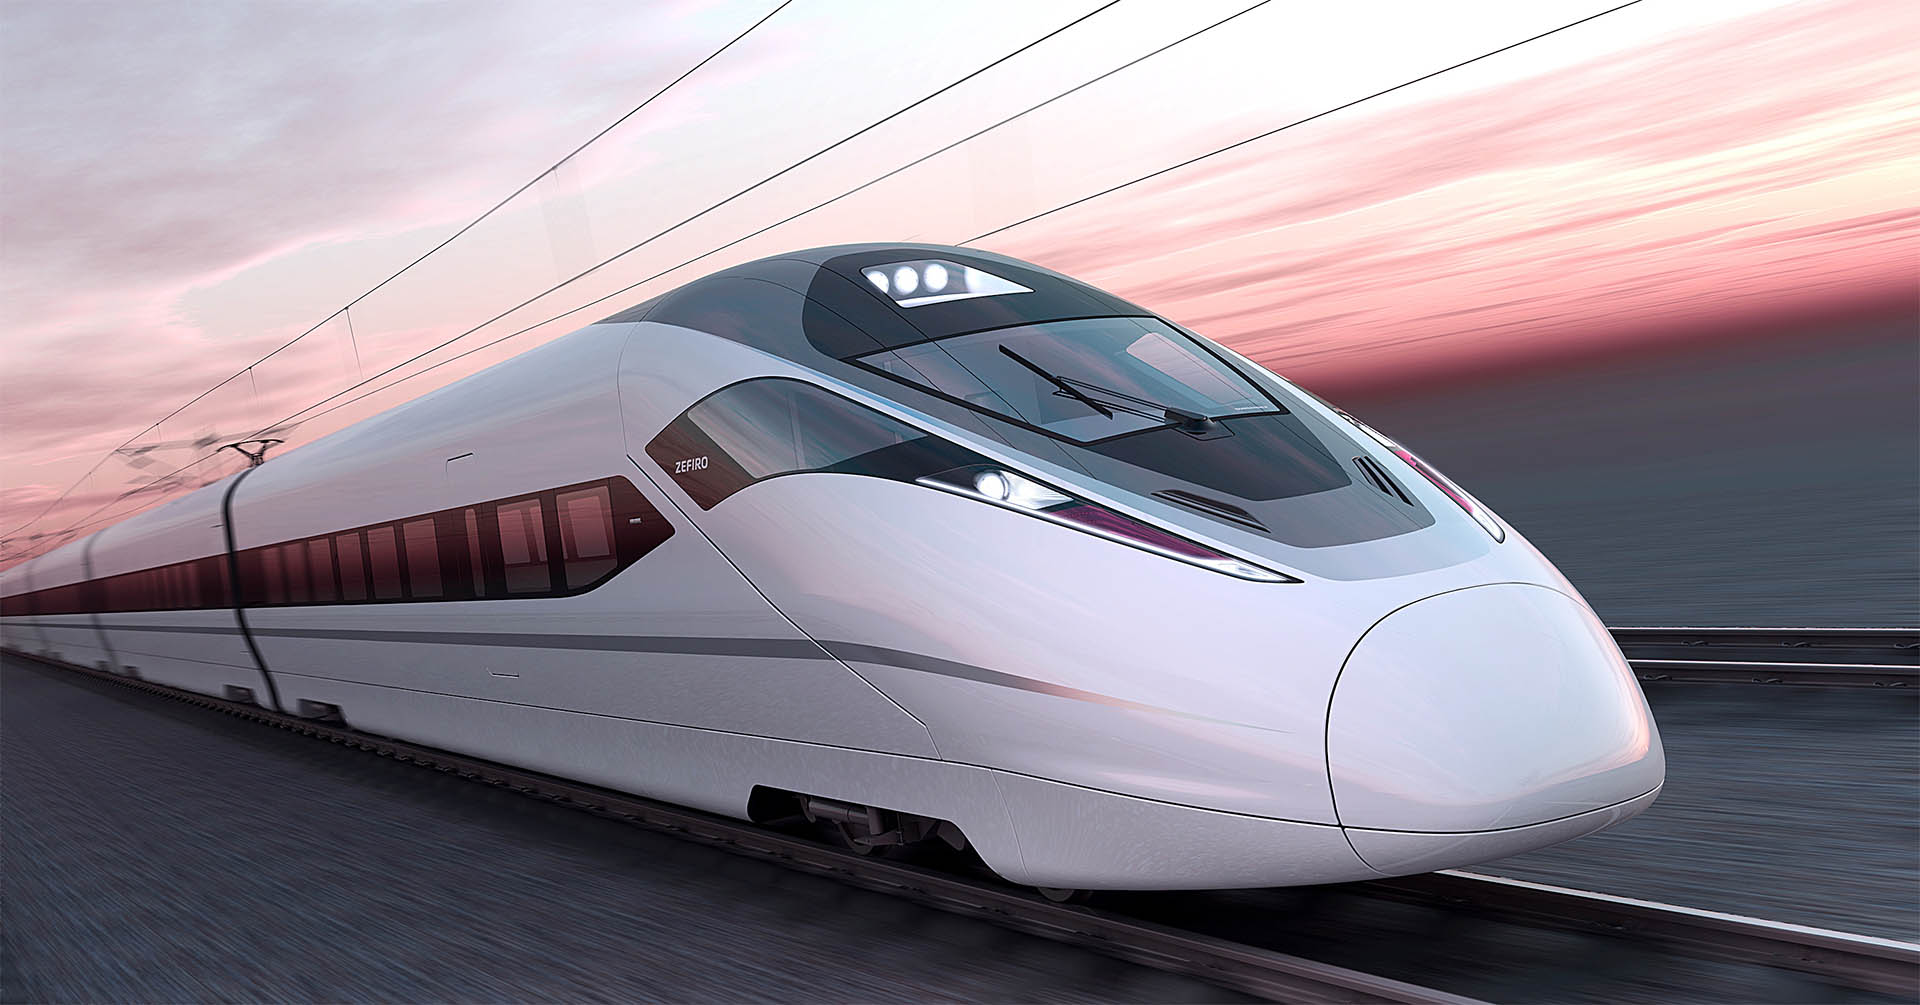 Are we getting high speed rail or not?